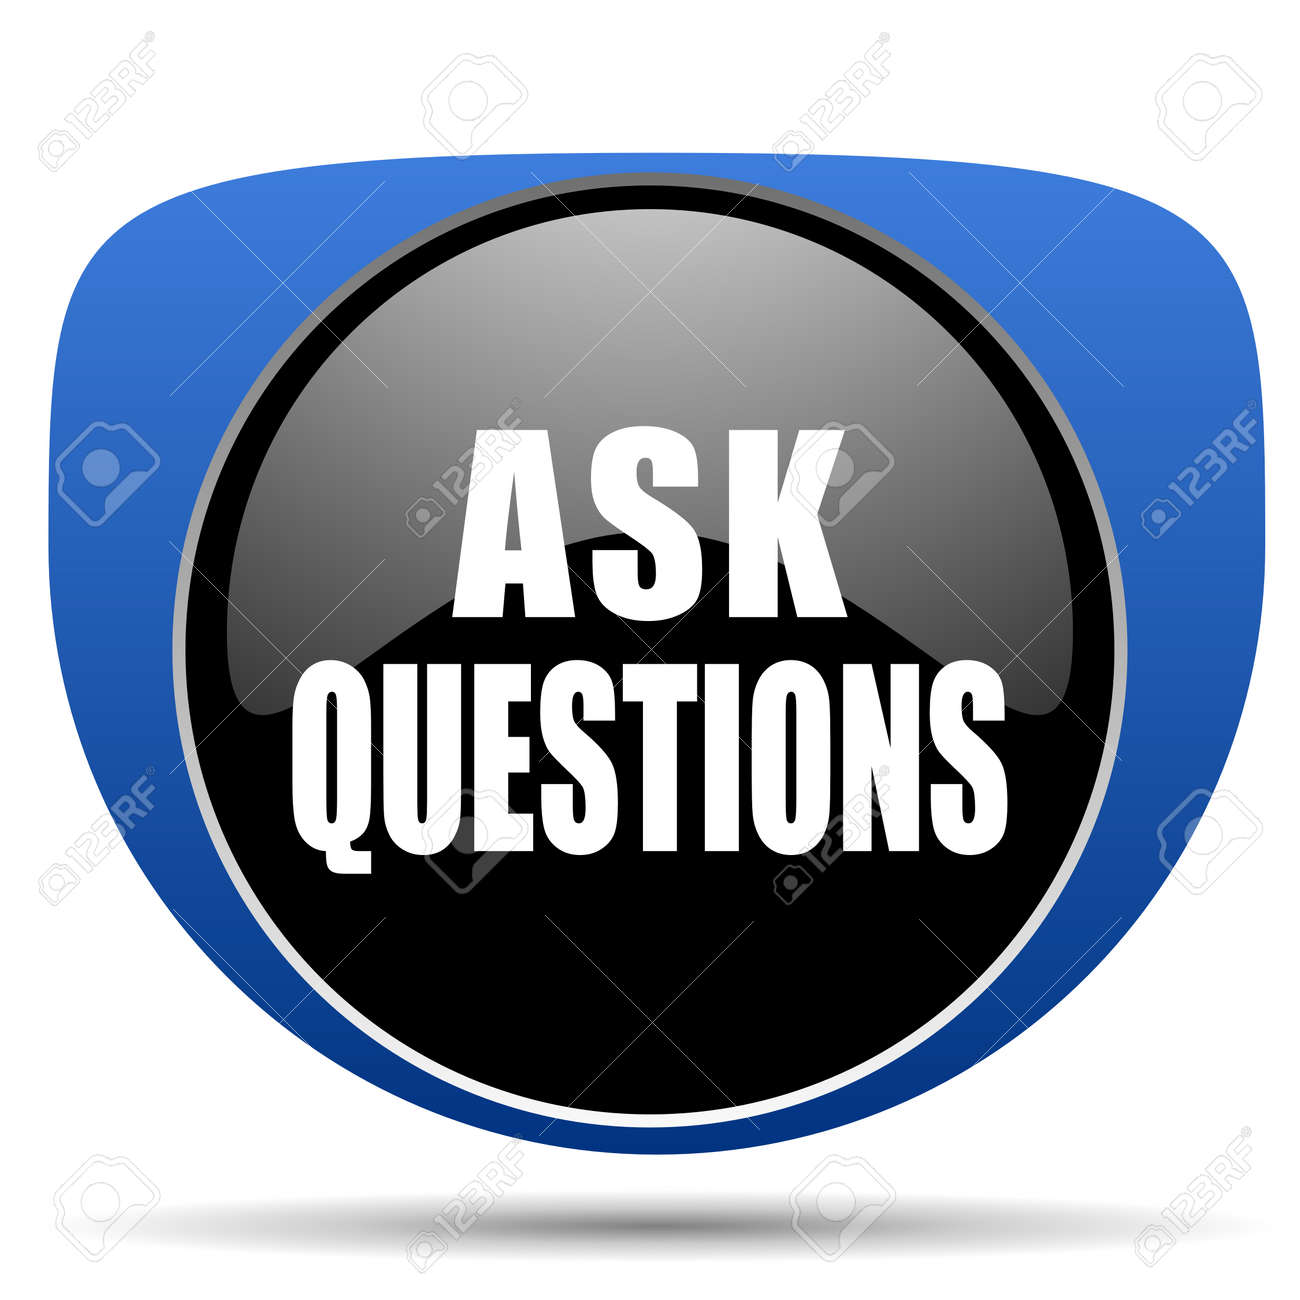 Ask questions web icon